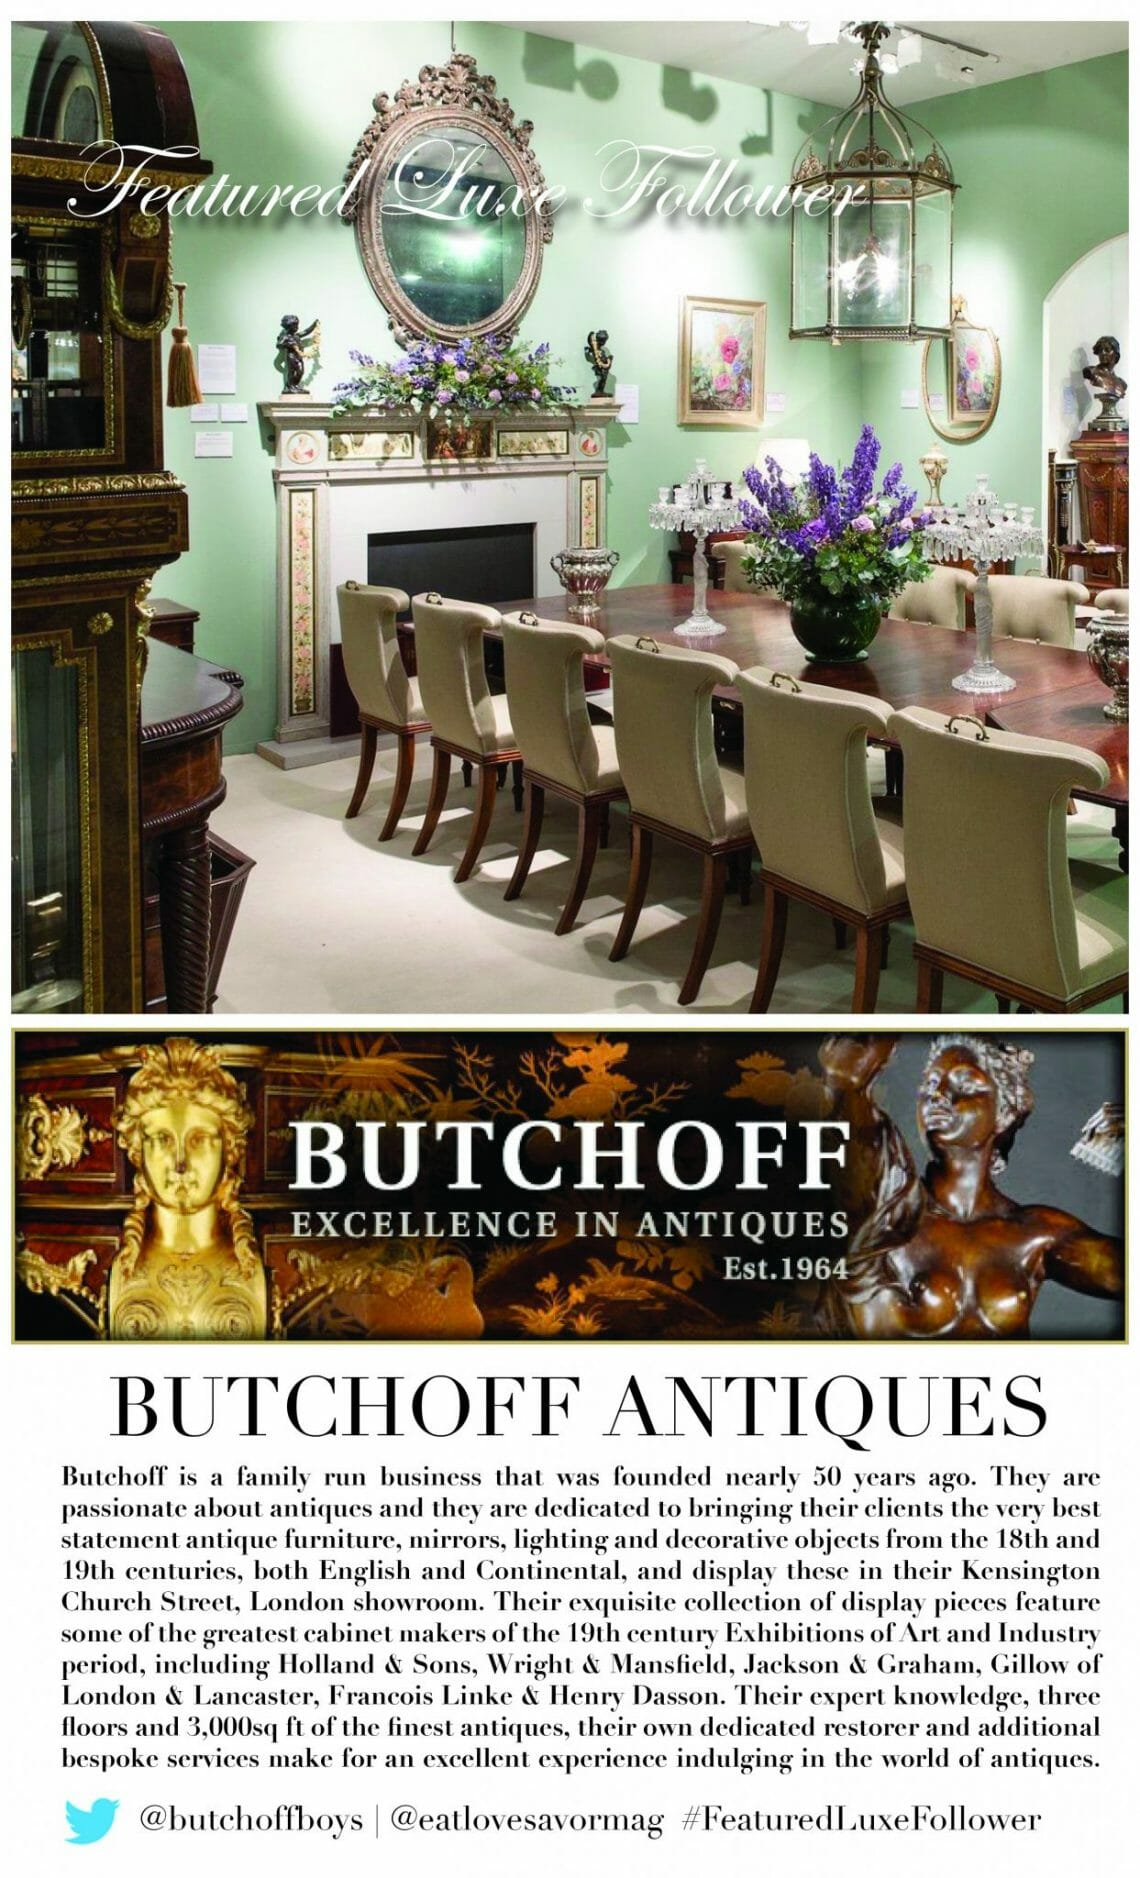 featured luxe follower jan 20 butchoff antiques #FeaturedLuxeFollower :: @ButchoffBoys - Butchoff Antiques - EAT LOVE SAVOR International luxury lifestyle magazine, bookazines & luxury community